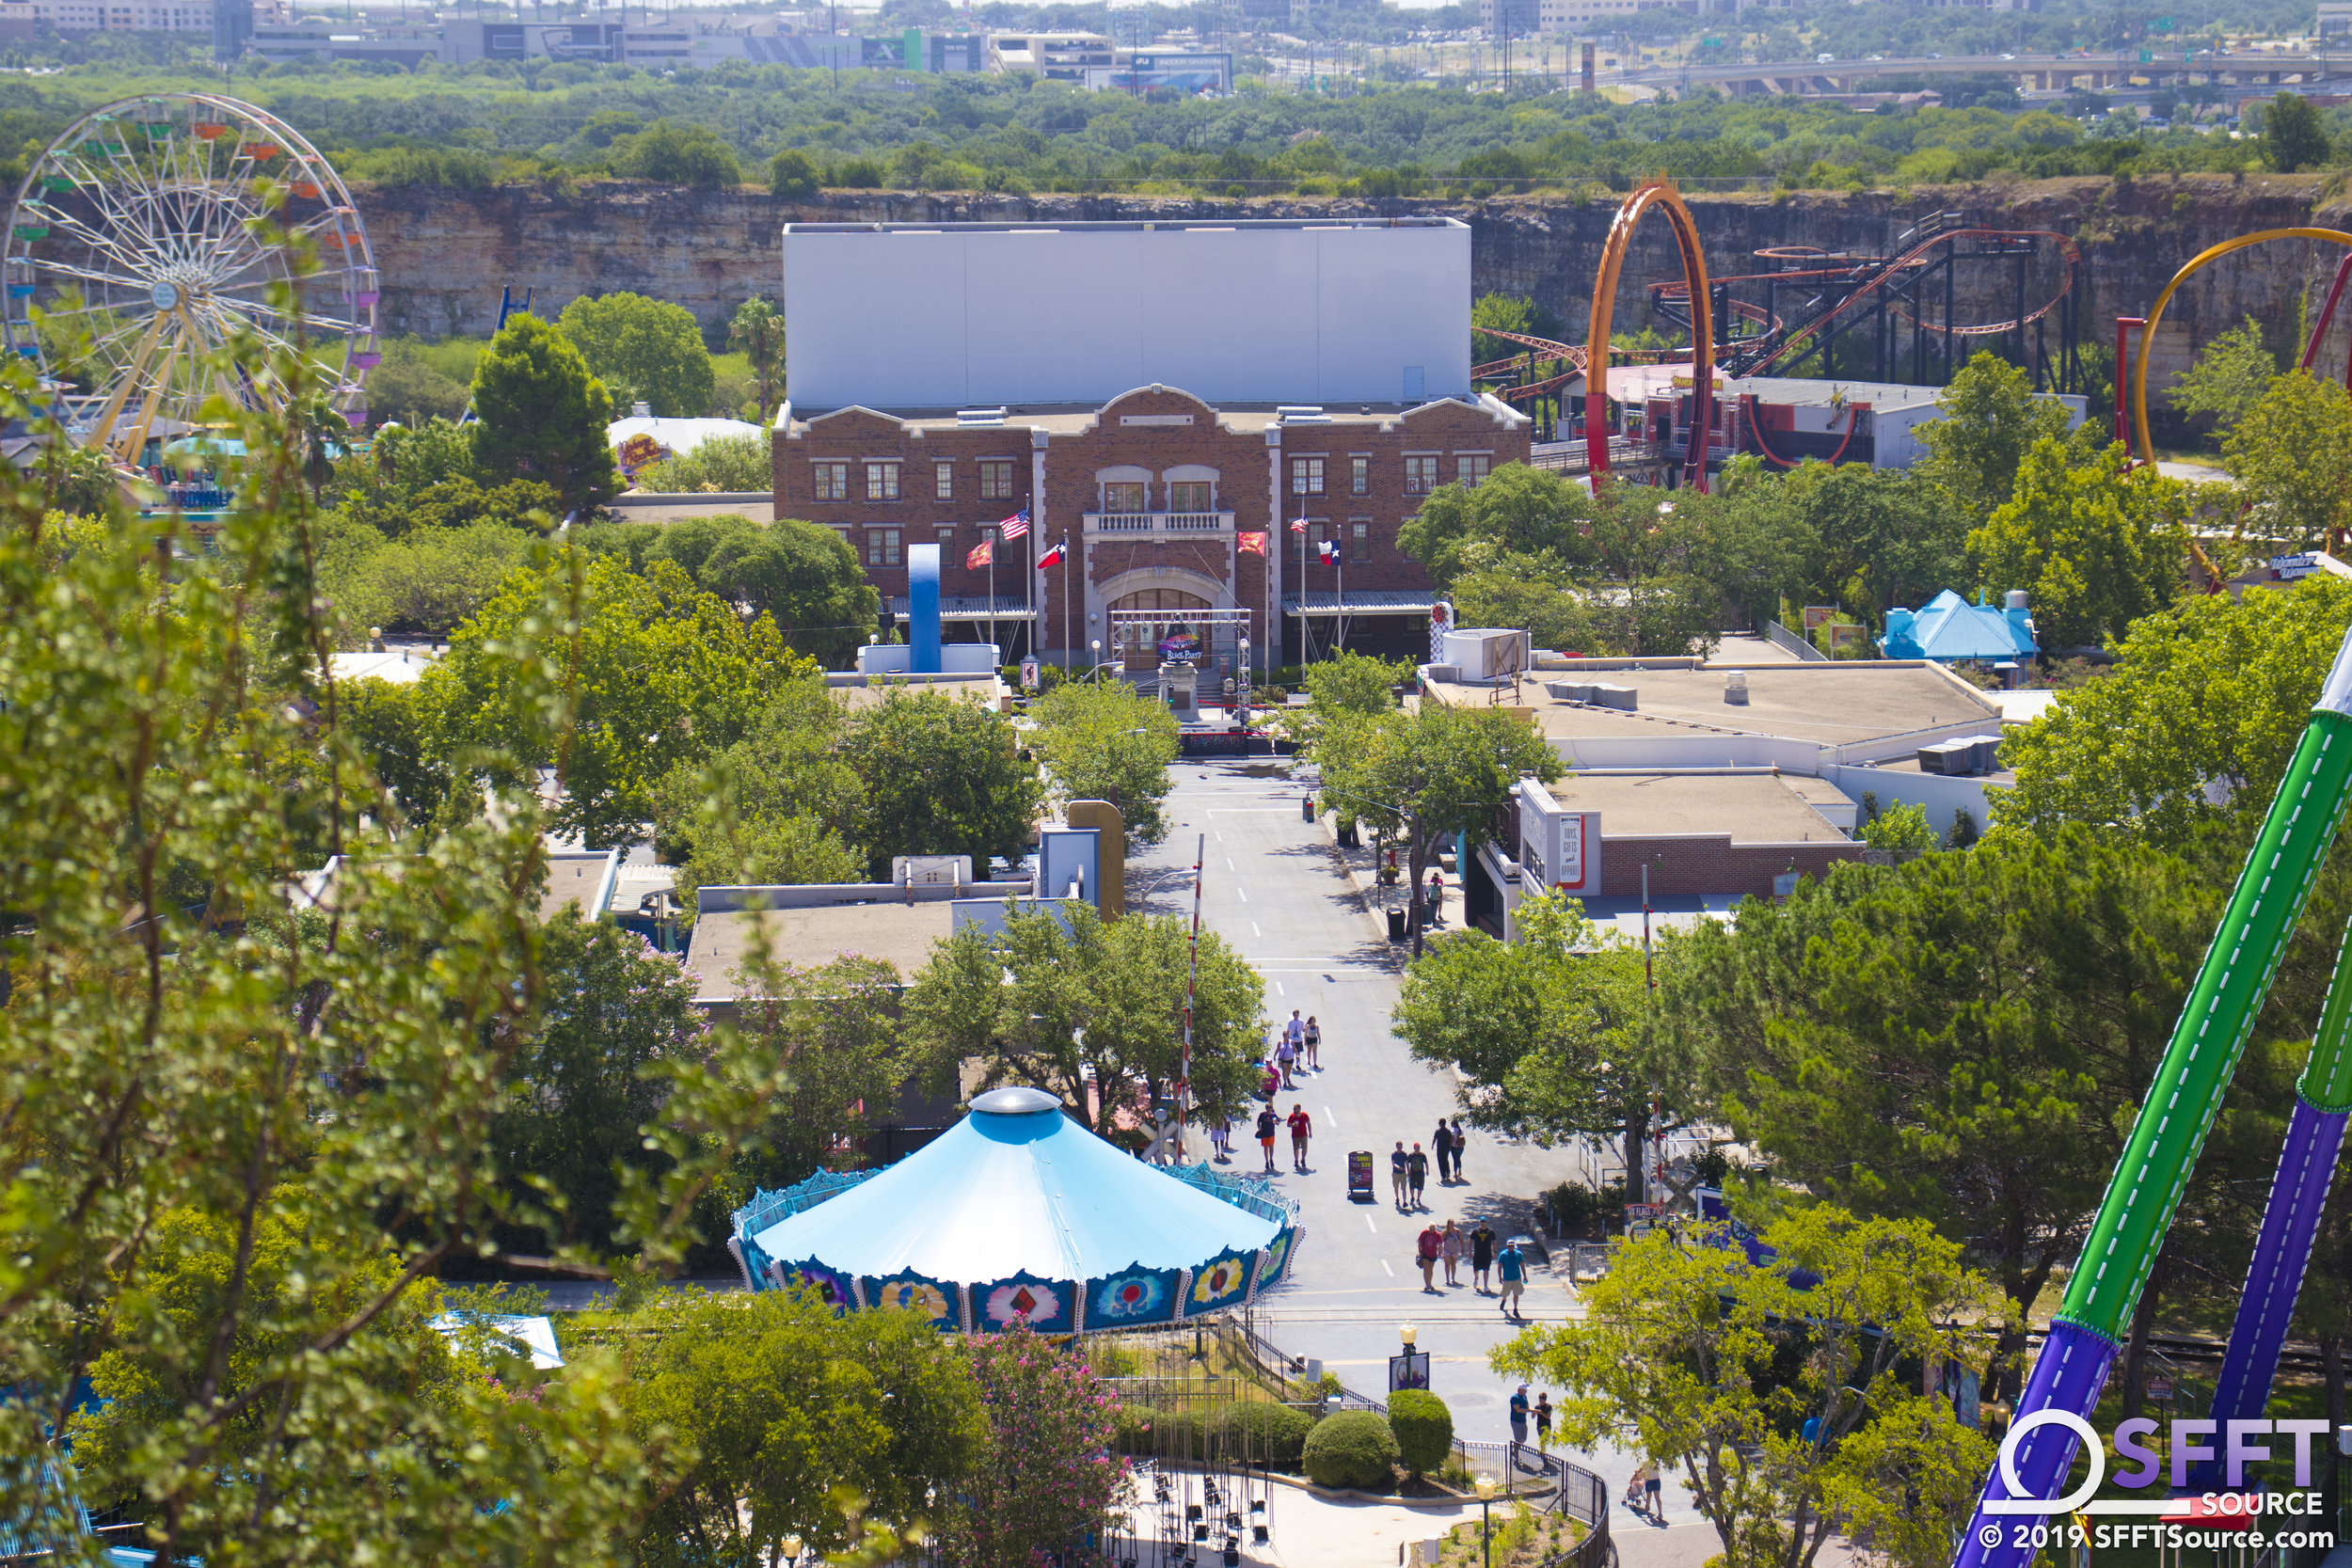 An aerial view of DC Universe as it leads up to the park's Rockville section.